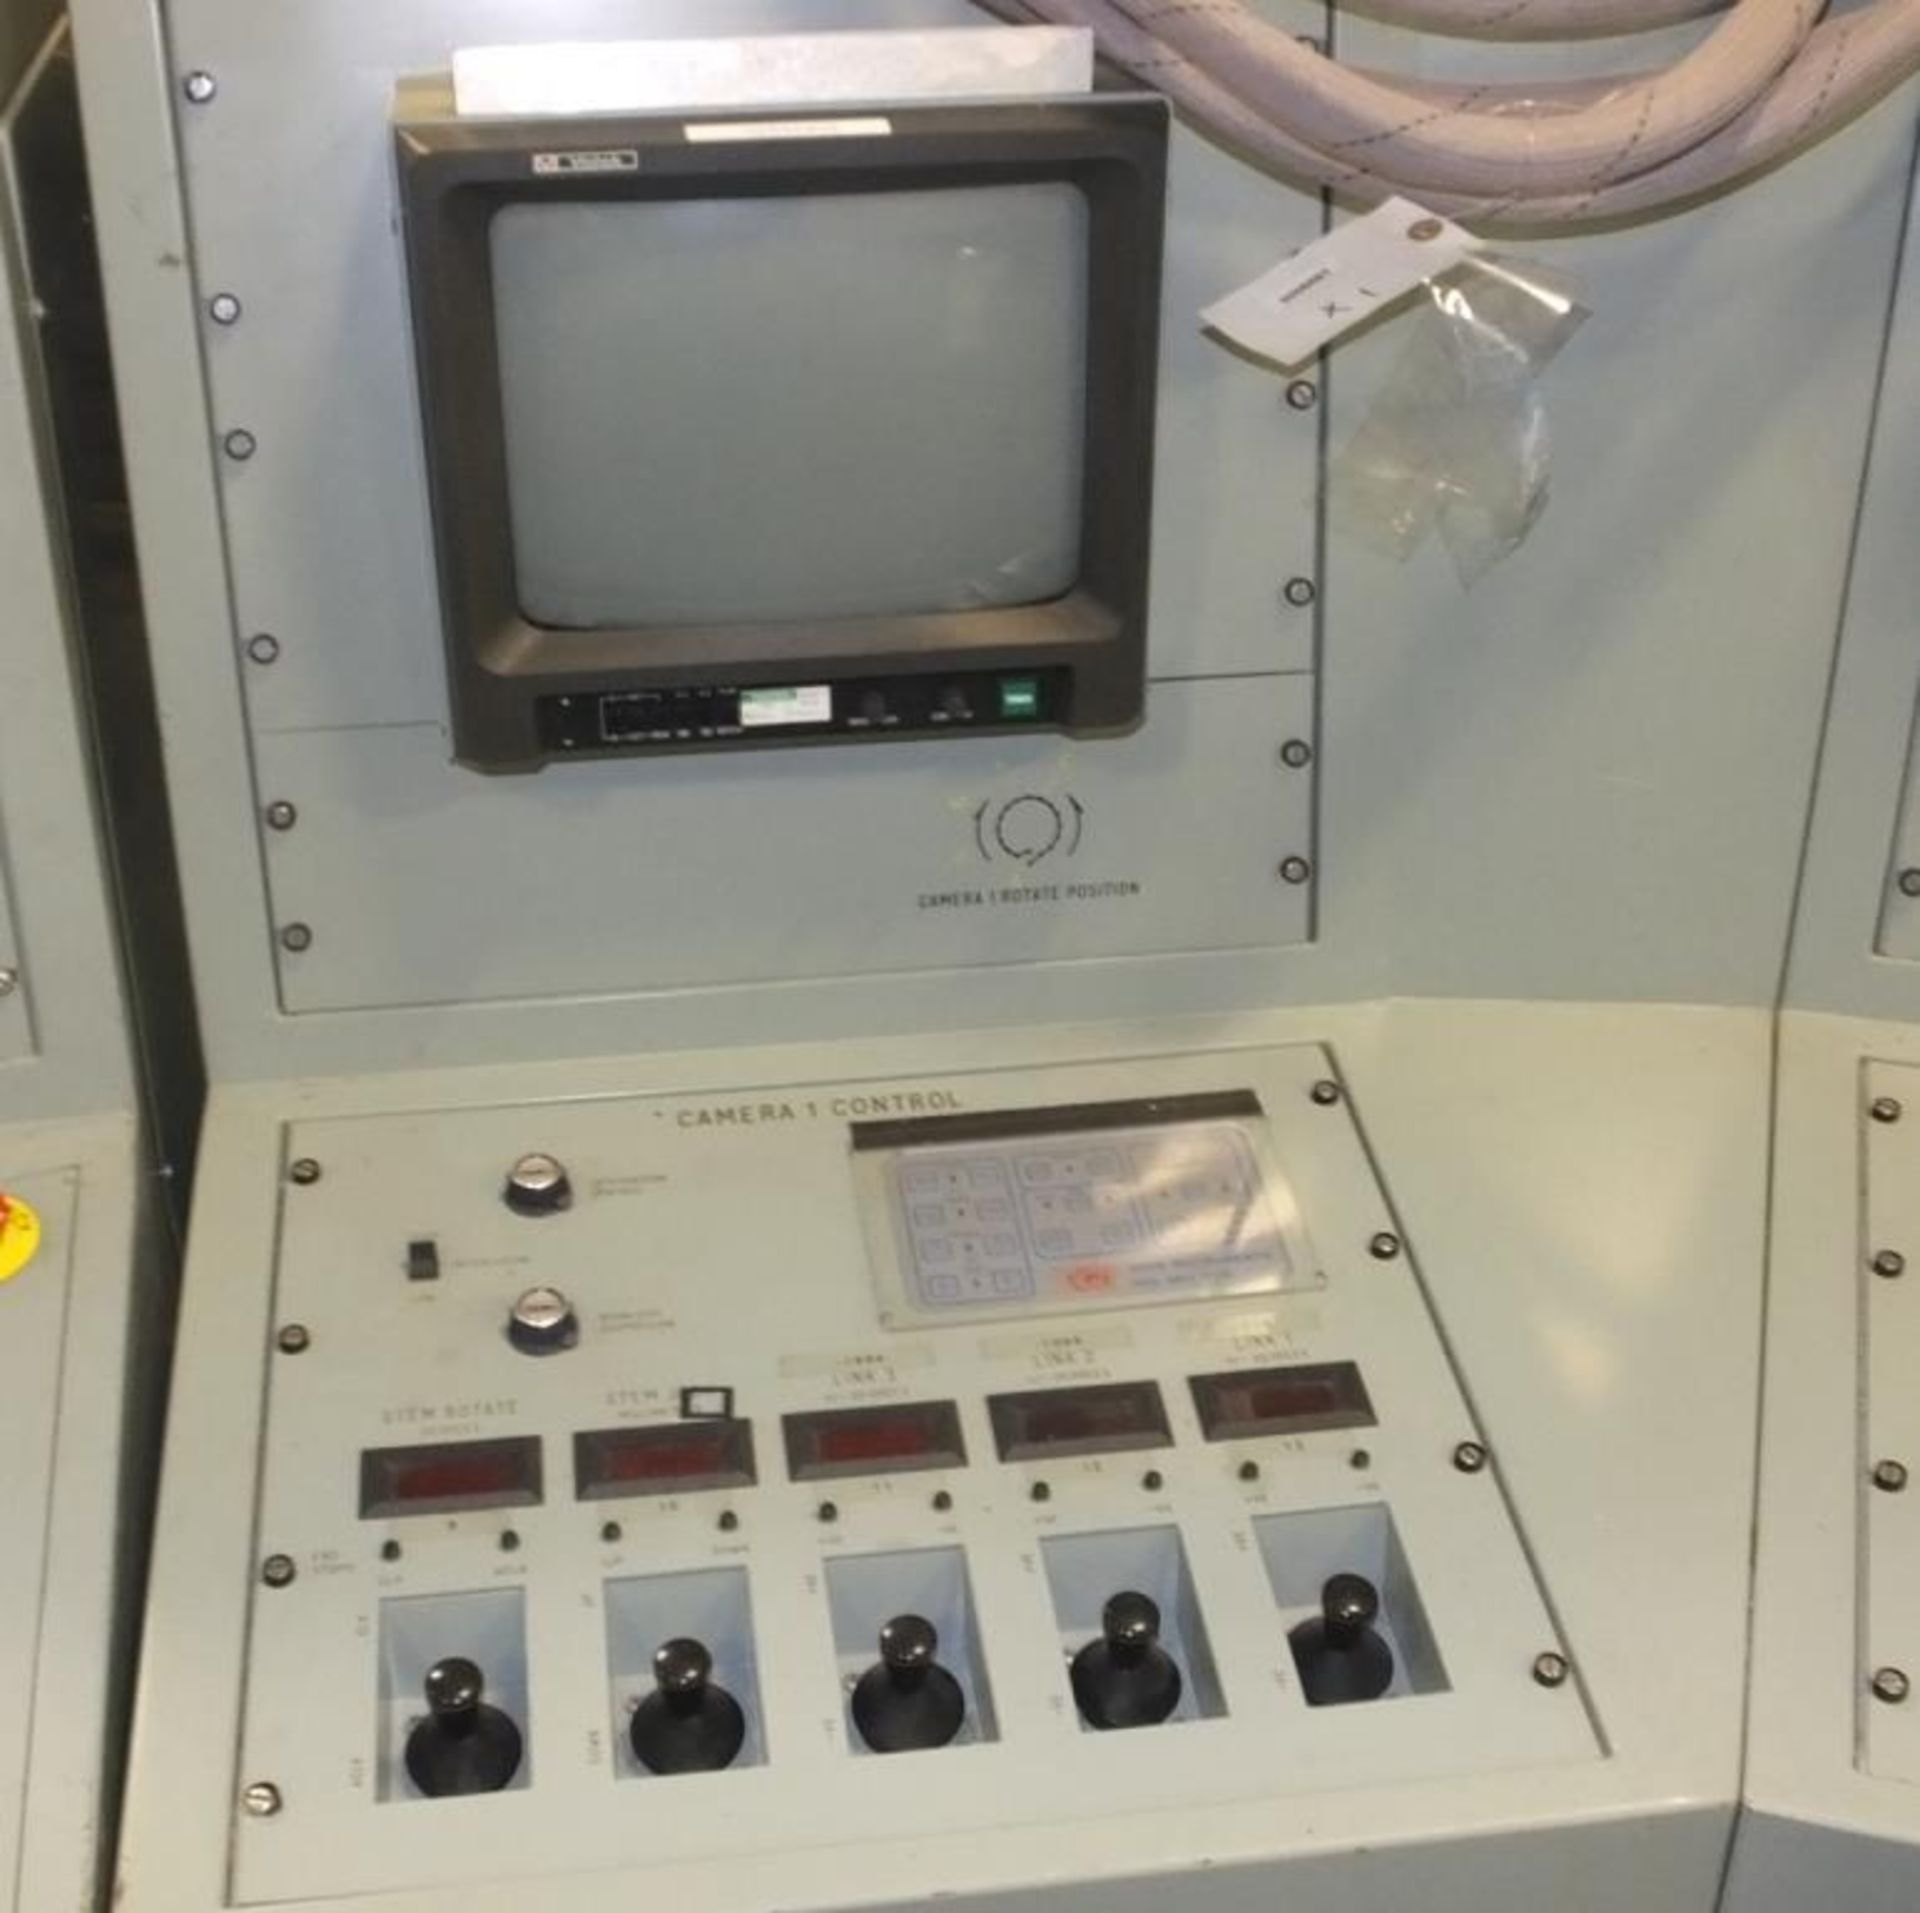 Ex Nuclear Plant Reactor Control / Monitoring System - Image 21 of 25